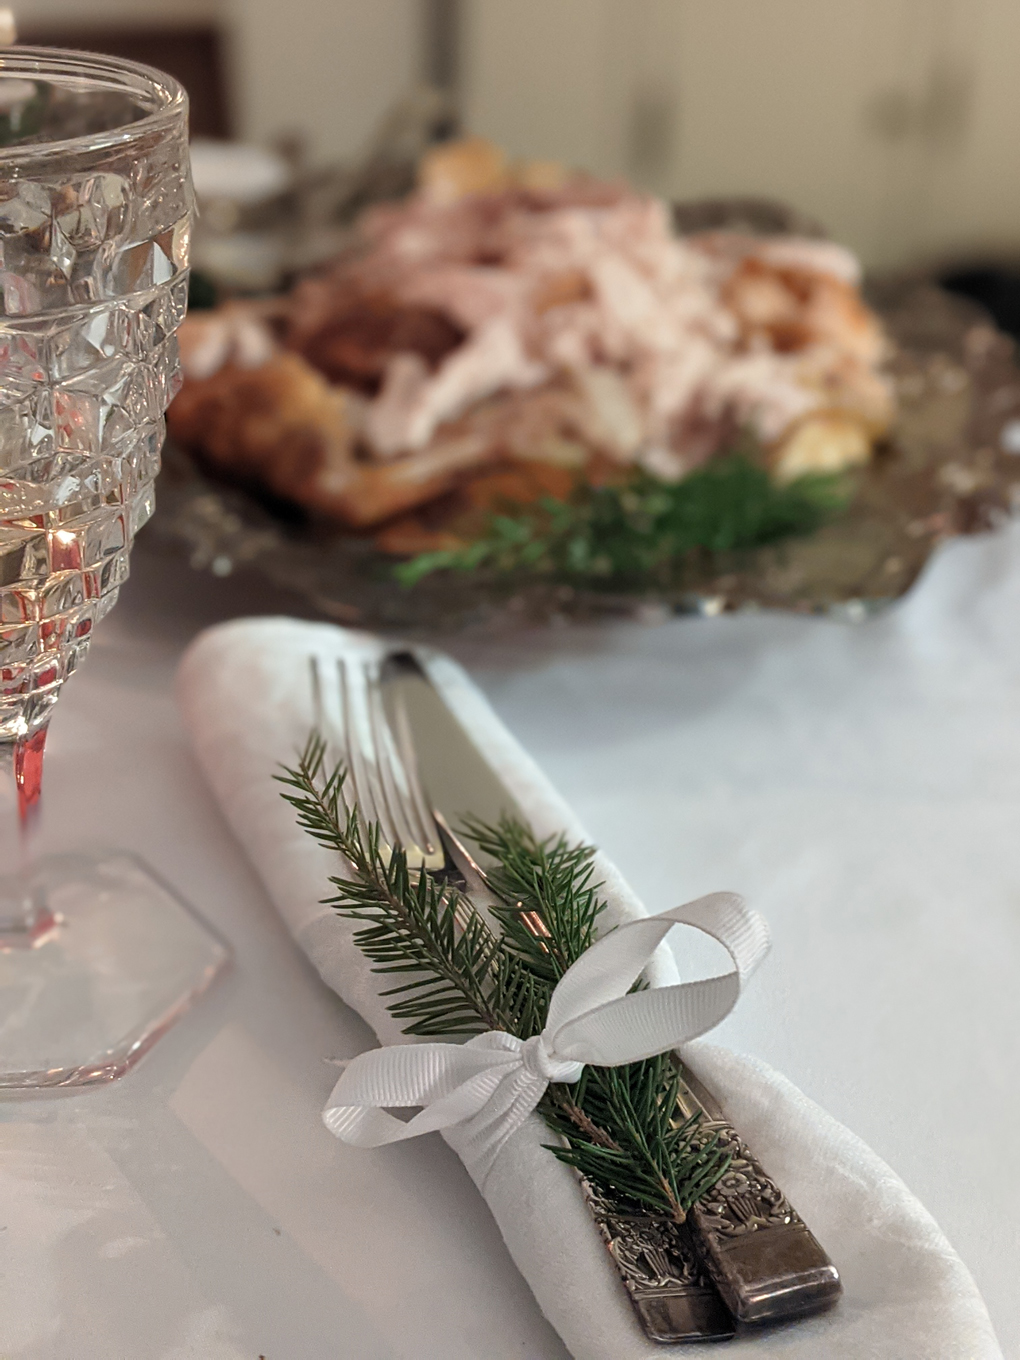 Cutlery wrapped in napkin with festive foliage, blurred platter of turkey in background